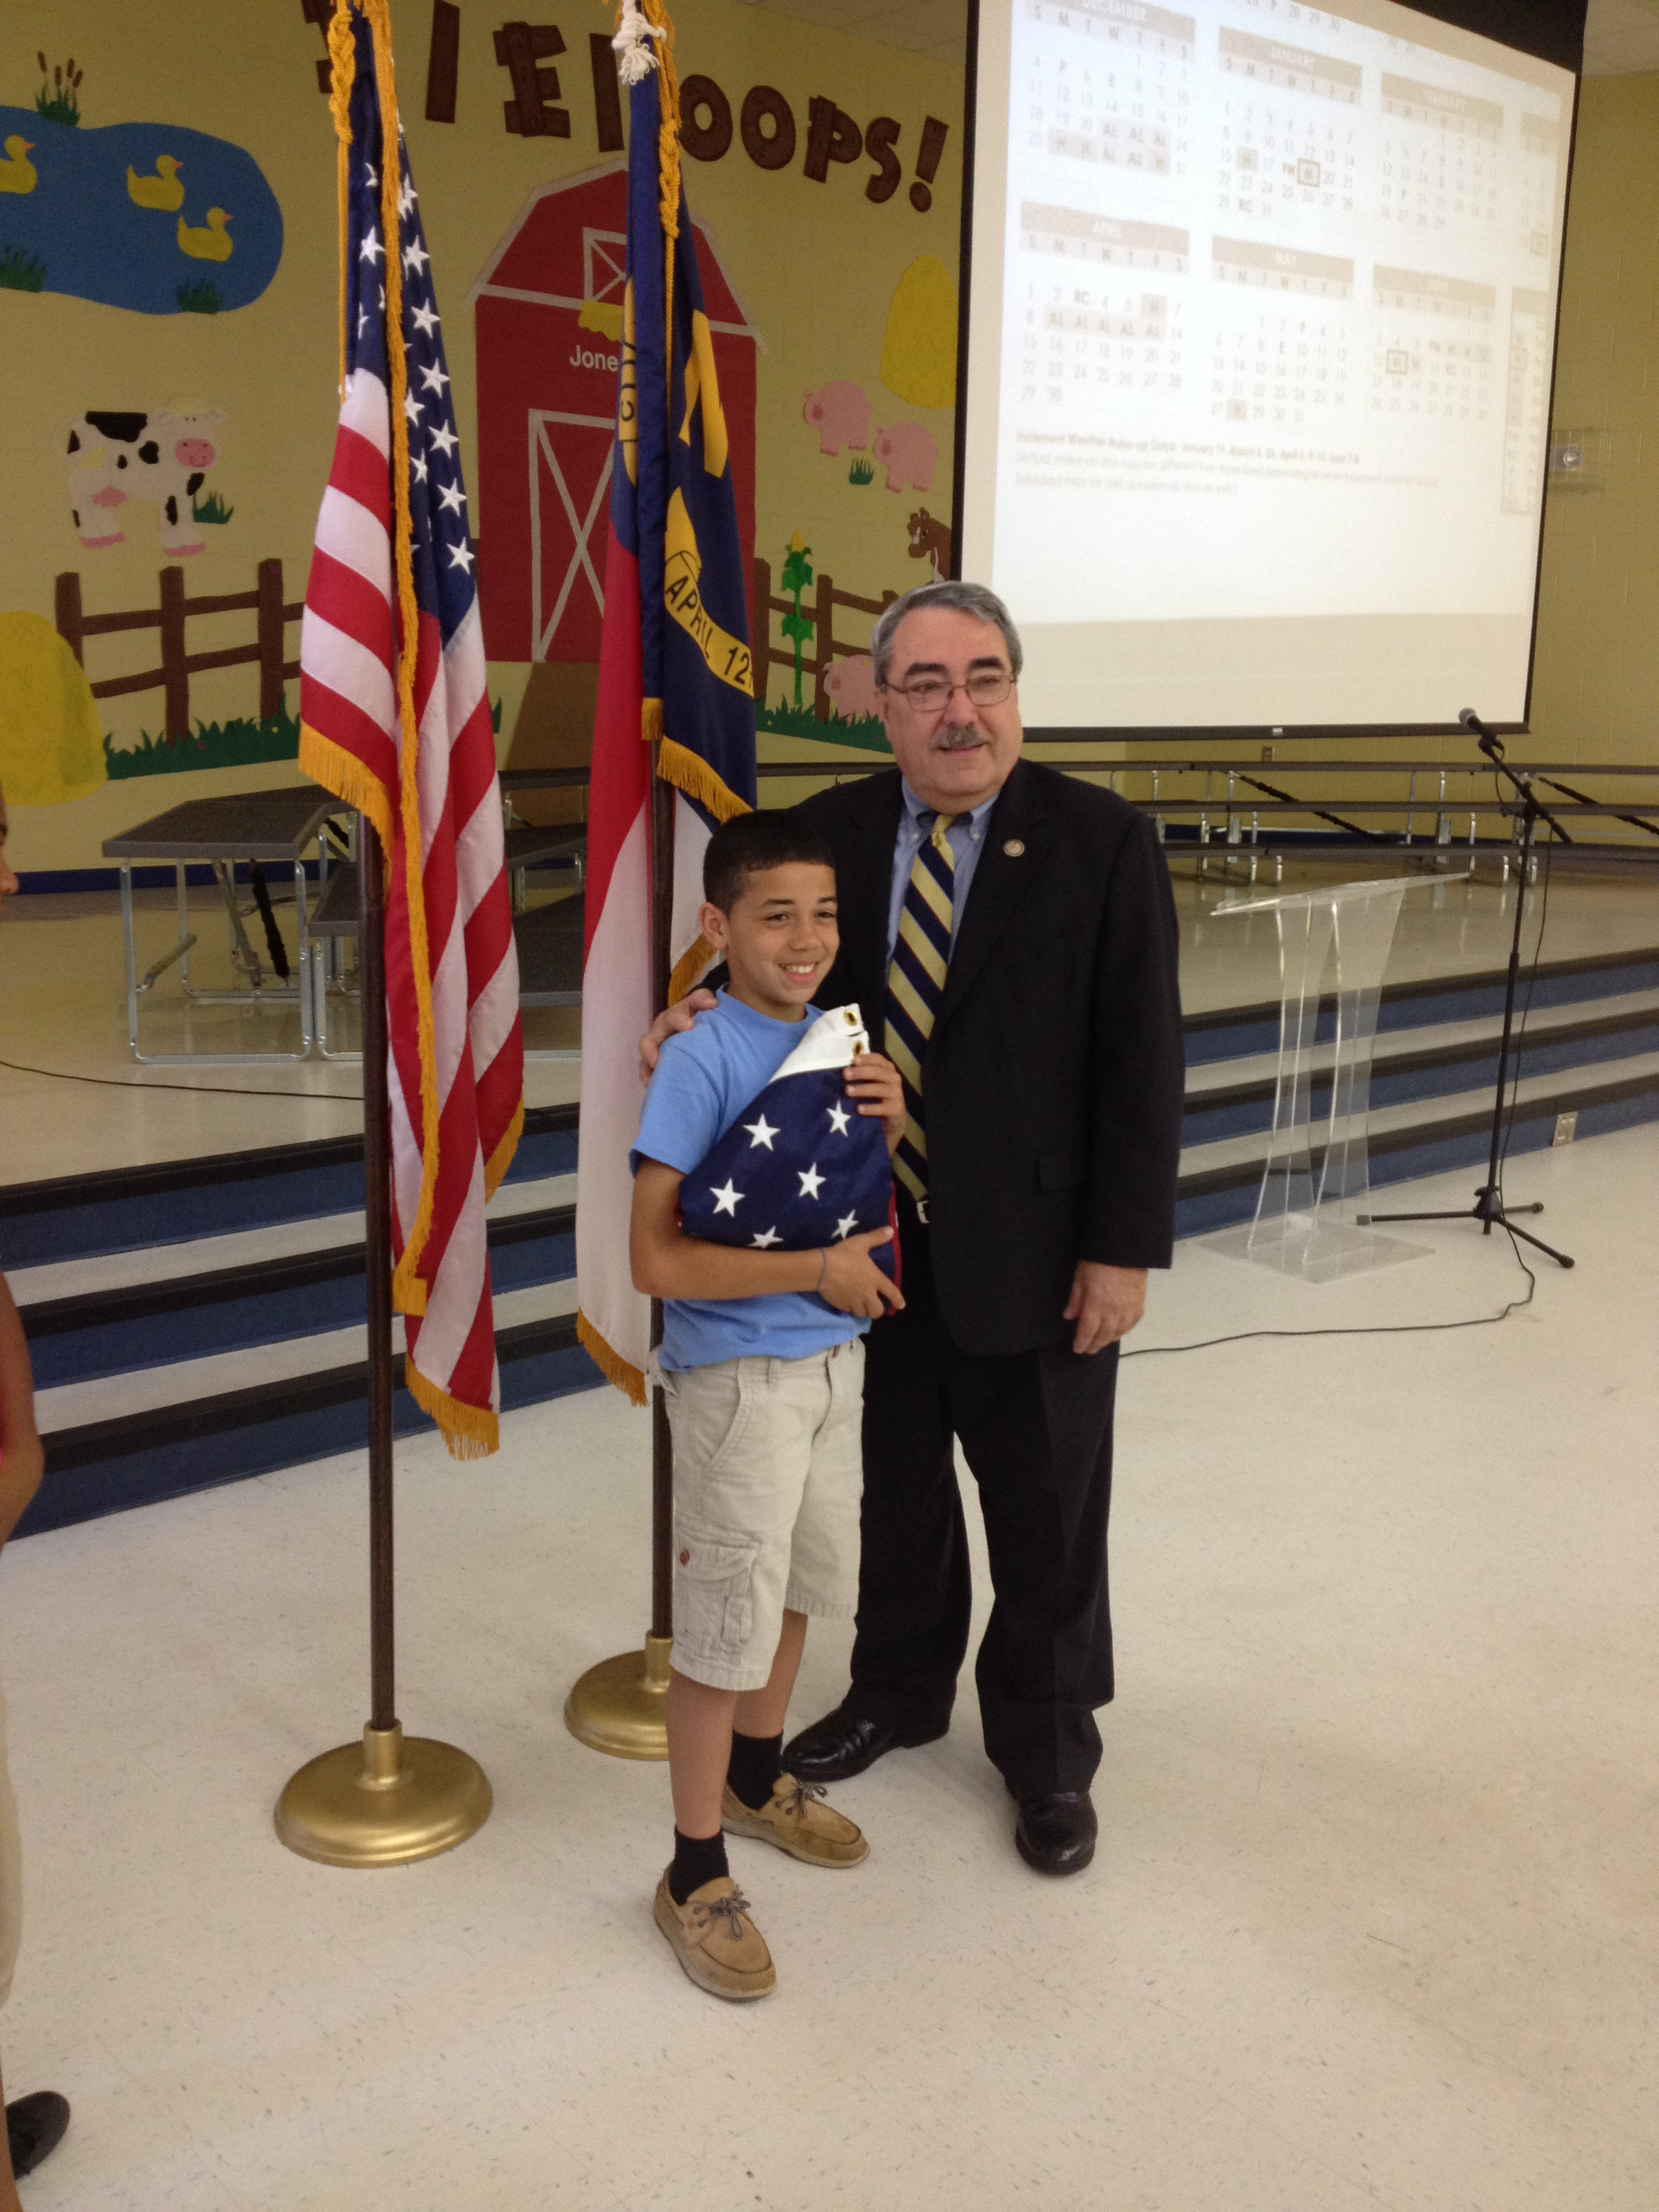 Congressman Butterfield presents a flag to a student at Jones Elementary in Wilson